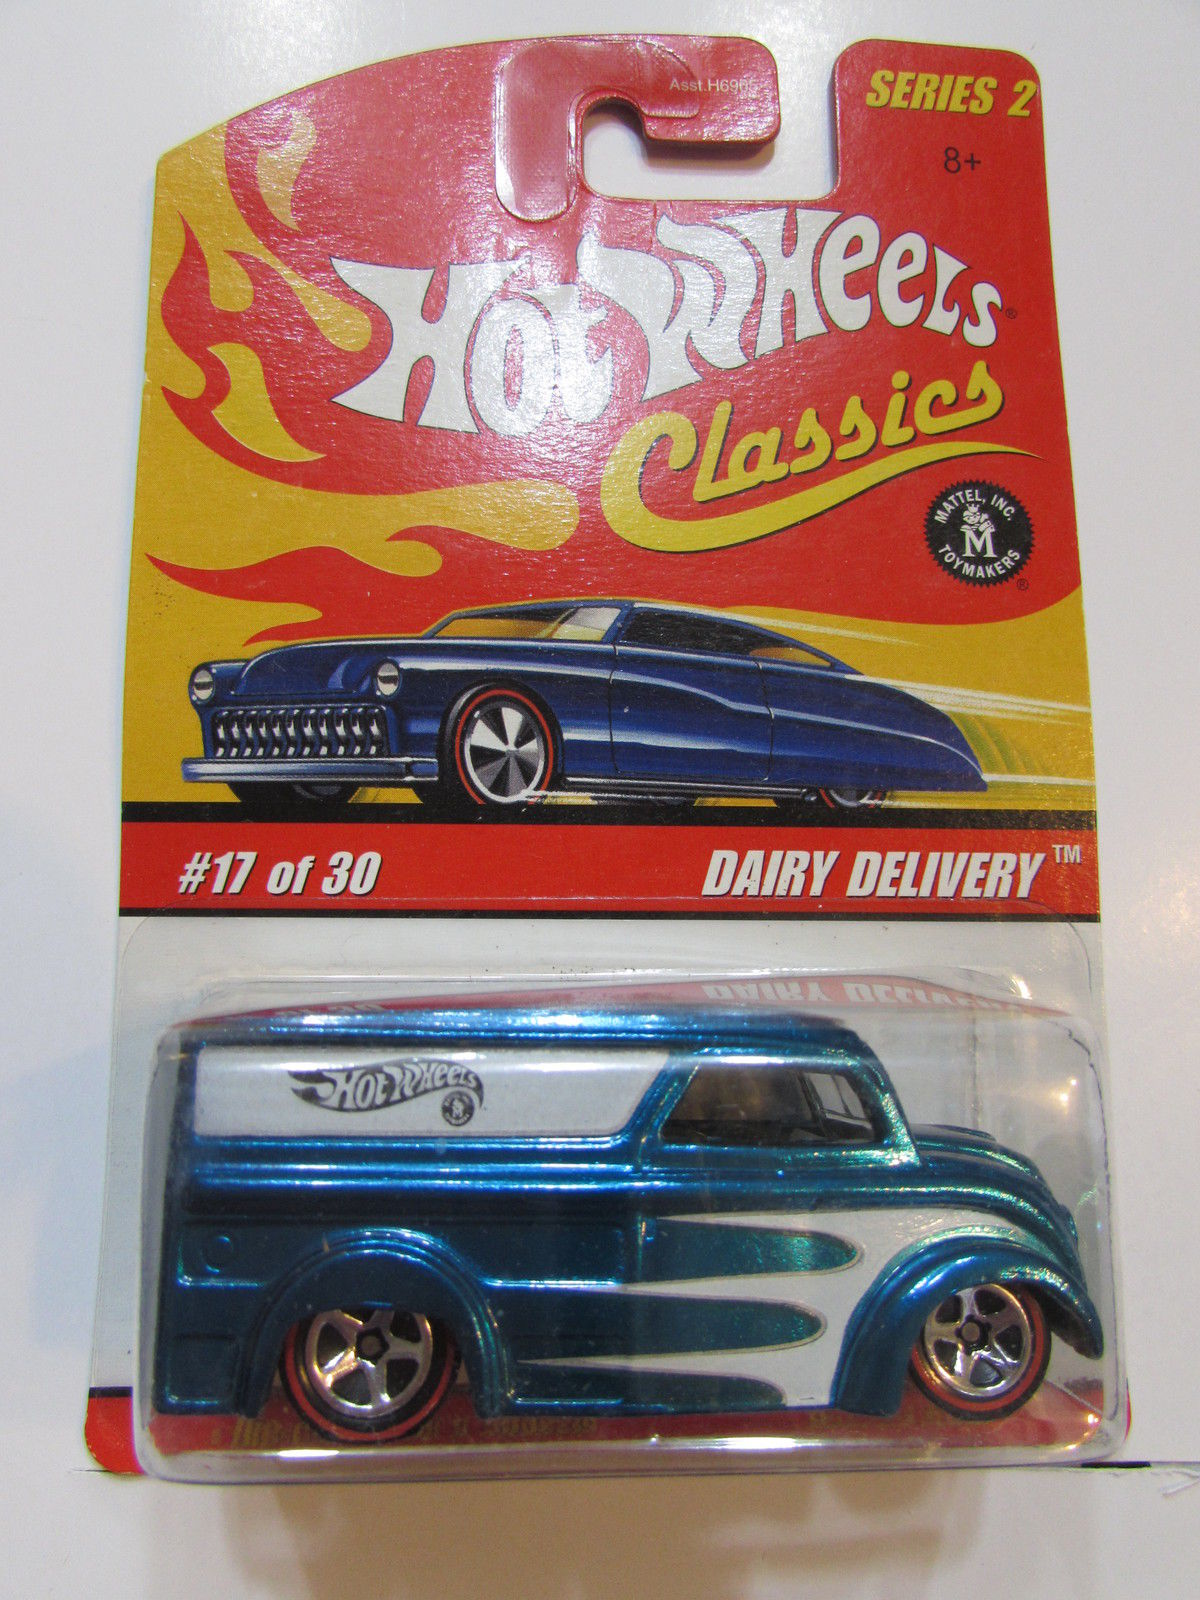 HOT WHEELS CLASSICS SERIES 2 #17/30 DAIRY DELIVERY